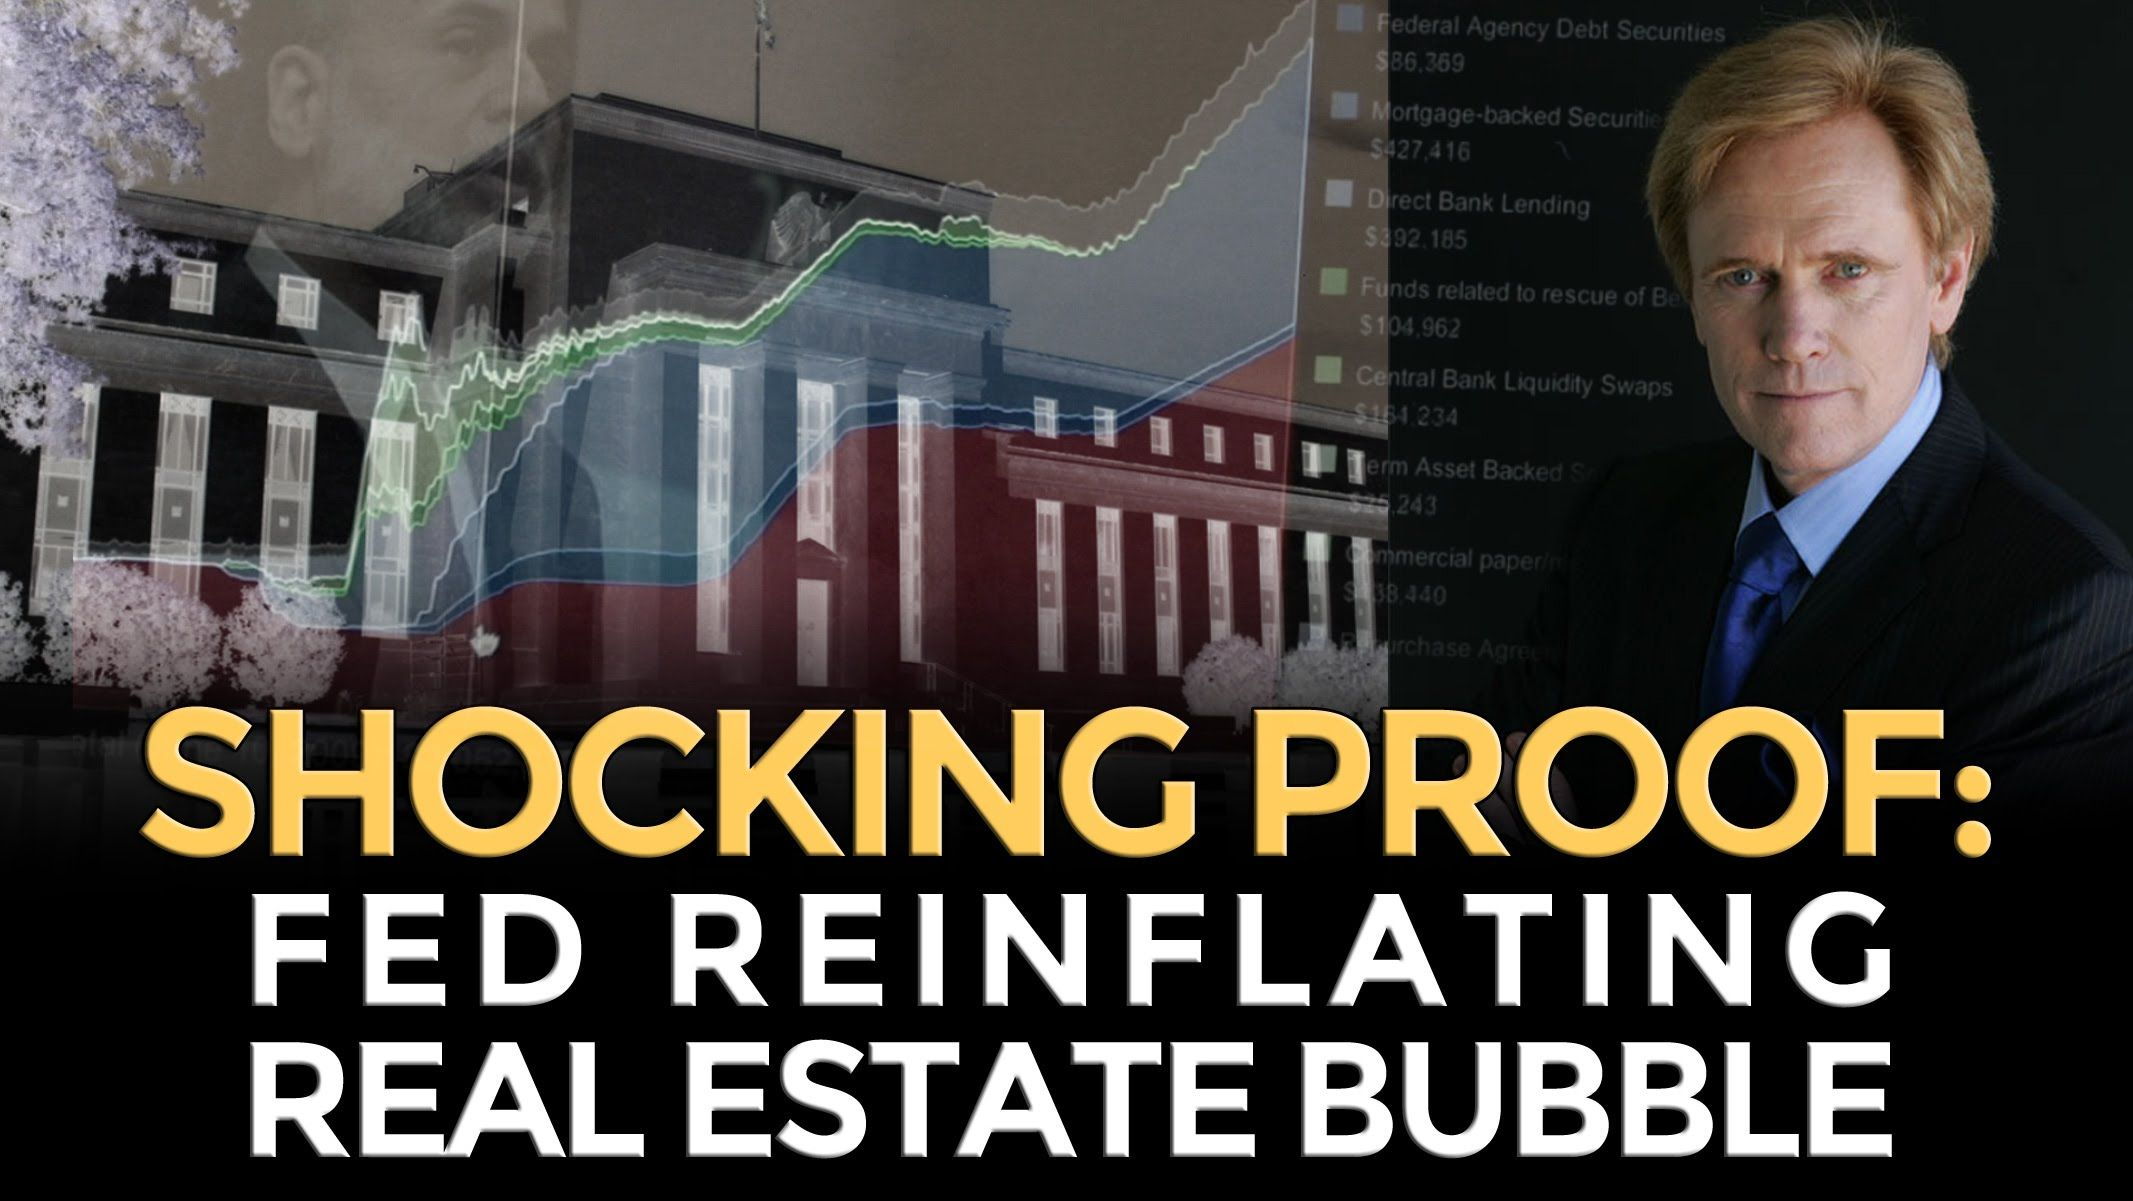 SHOCKING PROOF: Federal Reserve Reinflating Real Estate Bubble - Mike Maloney... Consider signing up for a free Karatbars account @ http://www.karatbars.com/?s=anitam - Karatbars are 24-carat currency gold bullion sold in small affordable increments. Gold is the asset (currency depreciates) that has proven the test of time against inflation & bankruptcy. Karatbars has an Affiliate Program that offers free gold & monetary compensation. www.EarnGold4Free.com